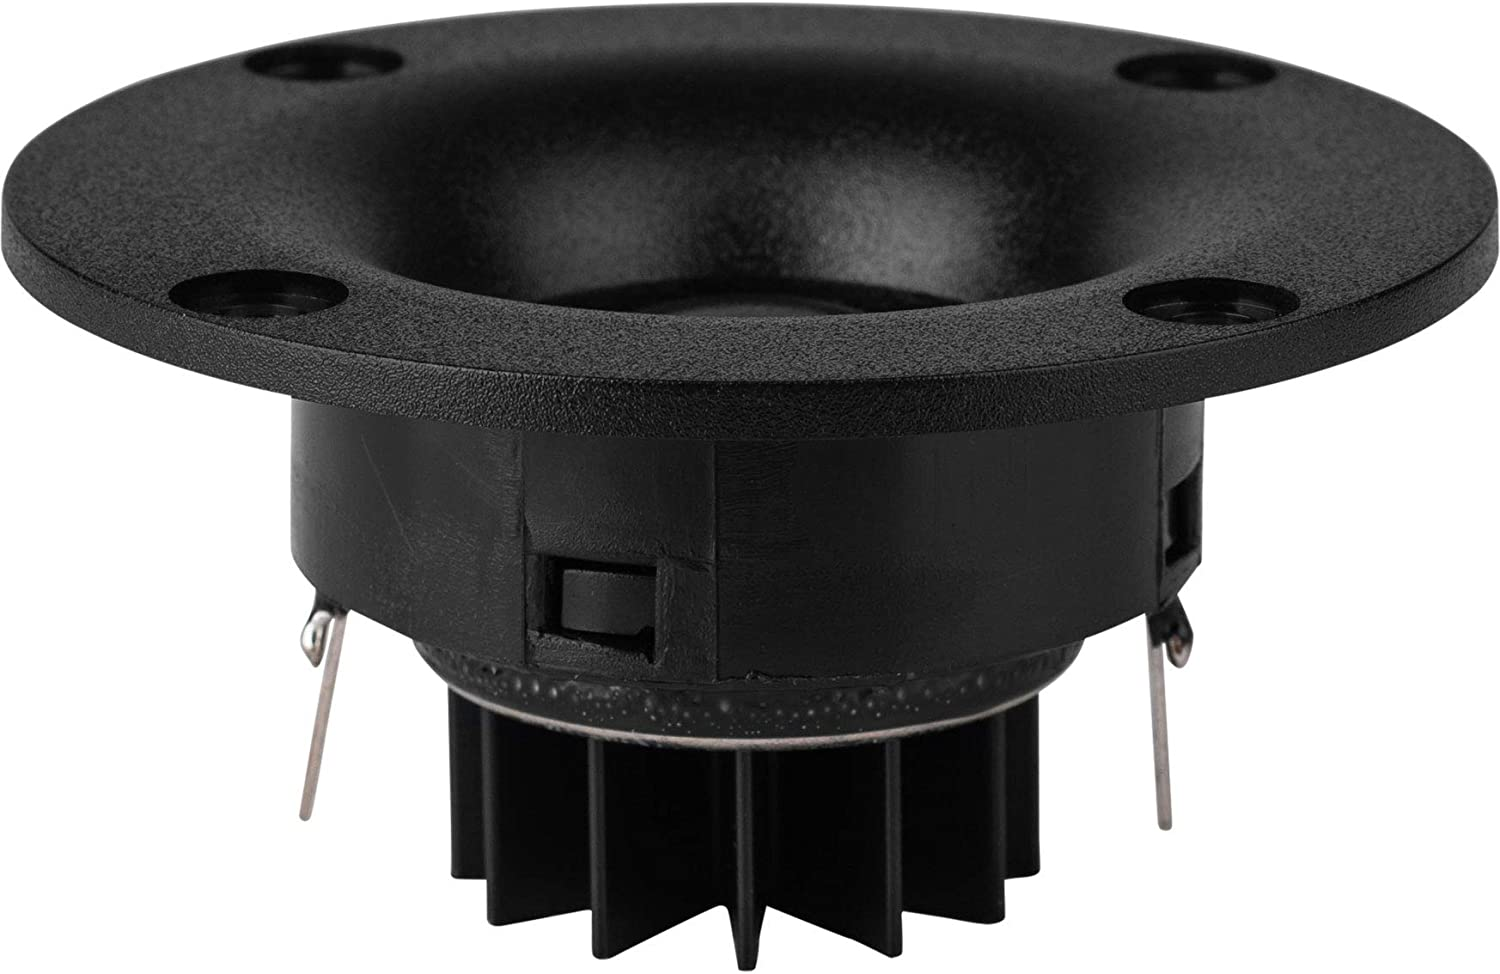 Peerless by Tymphany BC25SC06-04 1 Textile Dome Tweeter